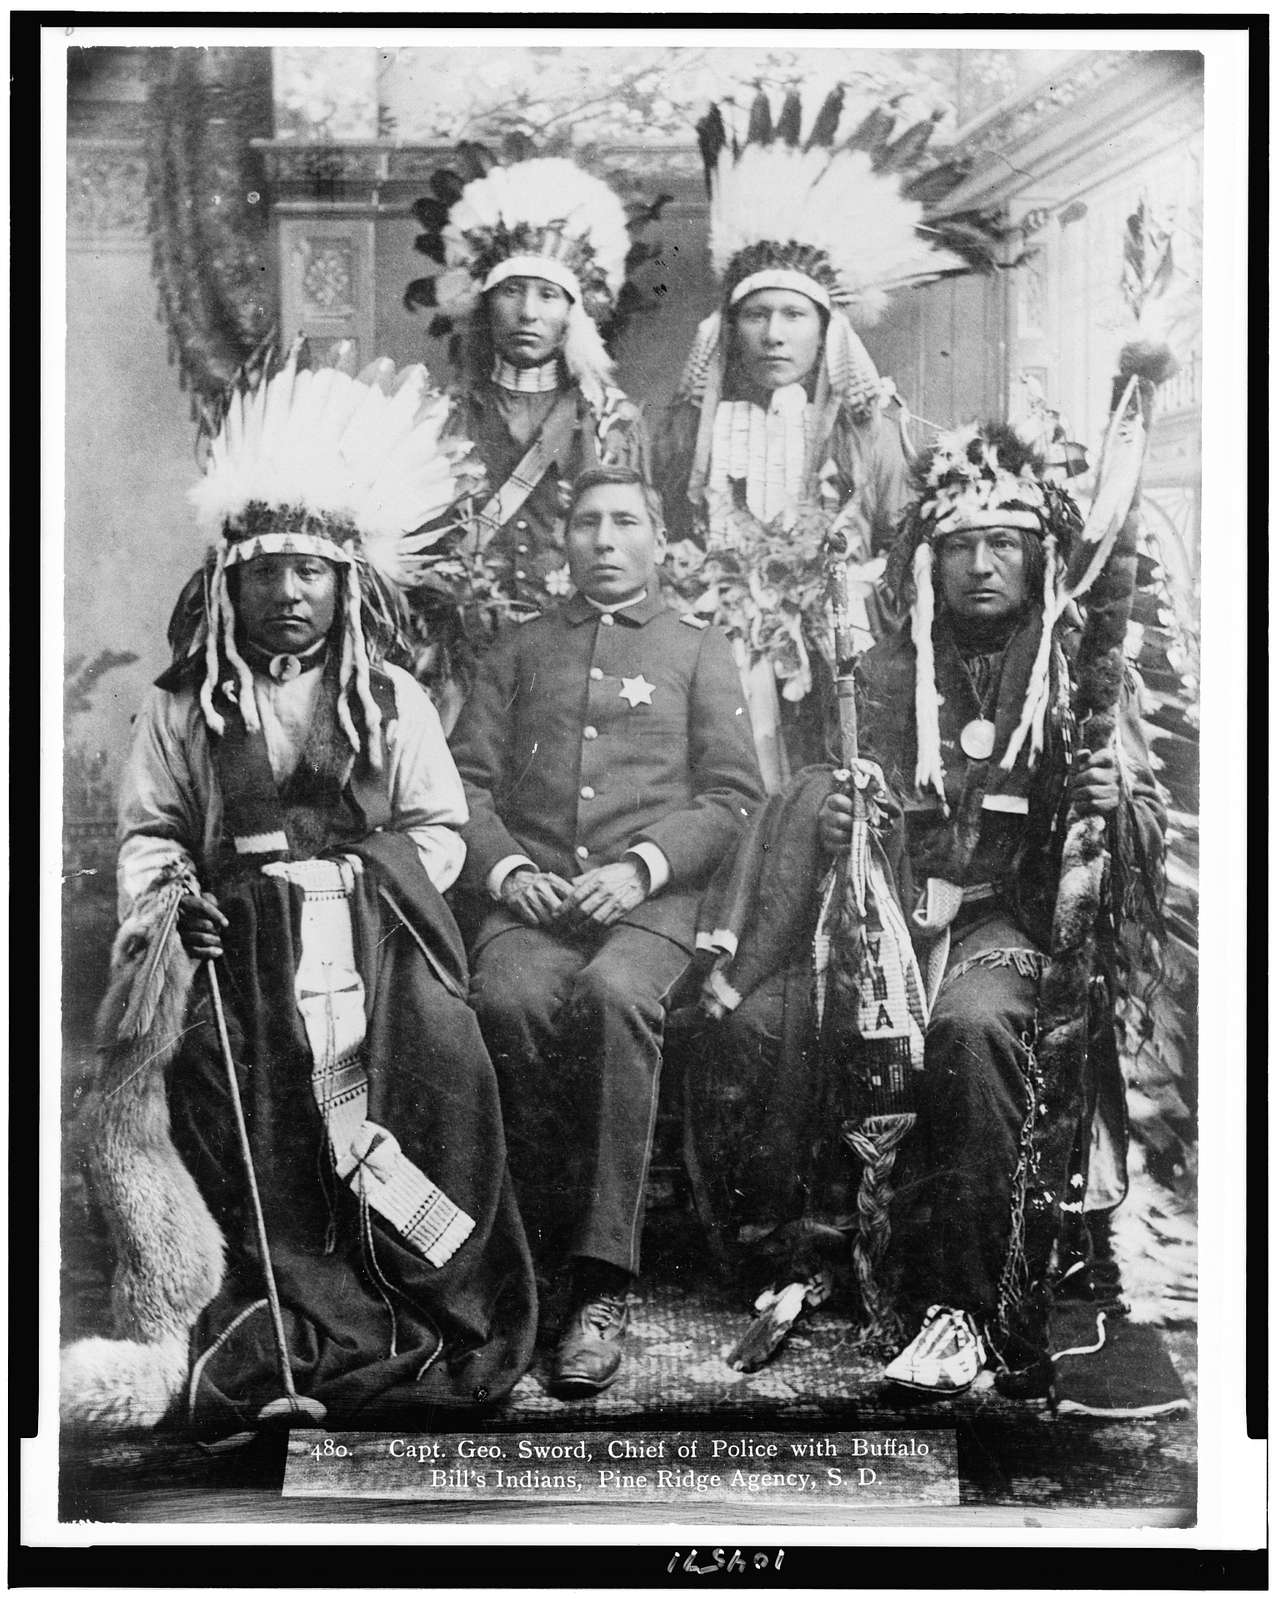 Capt. Geo Sword, chief of police with Buffalo Bill's Indians, Pine Ridge Agency, S.D. / W.R. Cross, portrait & view photographer, ... Hot Springs, S. Dak.